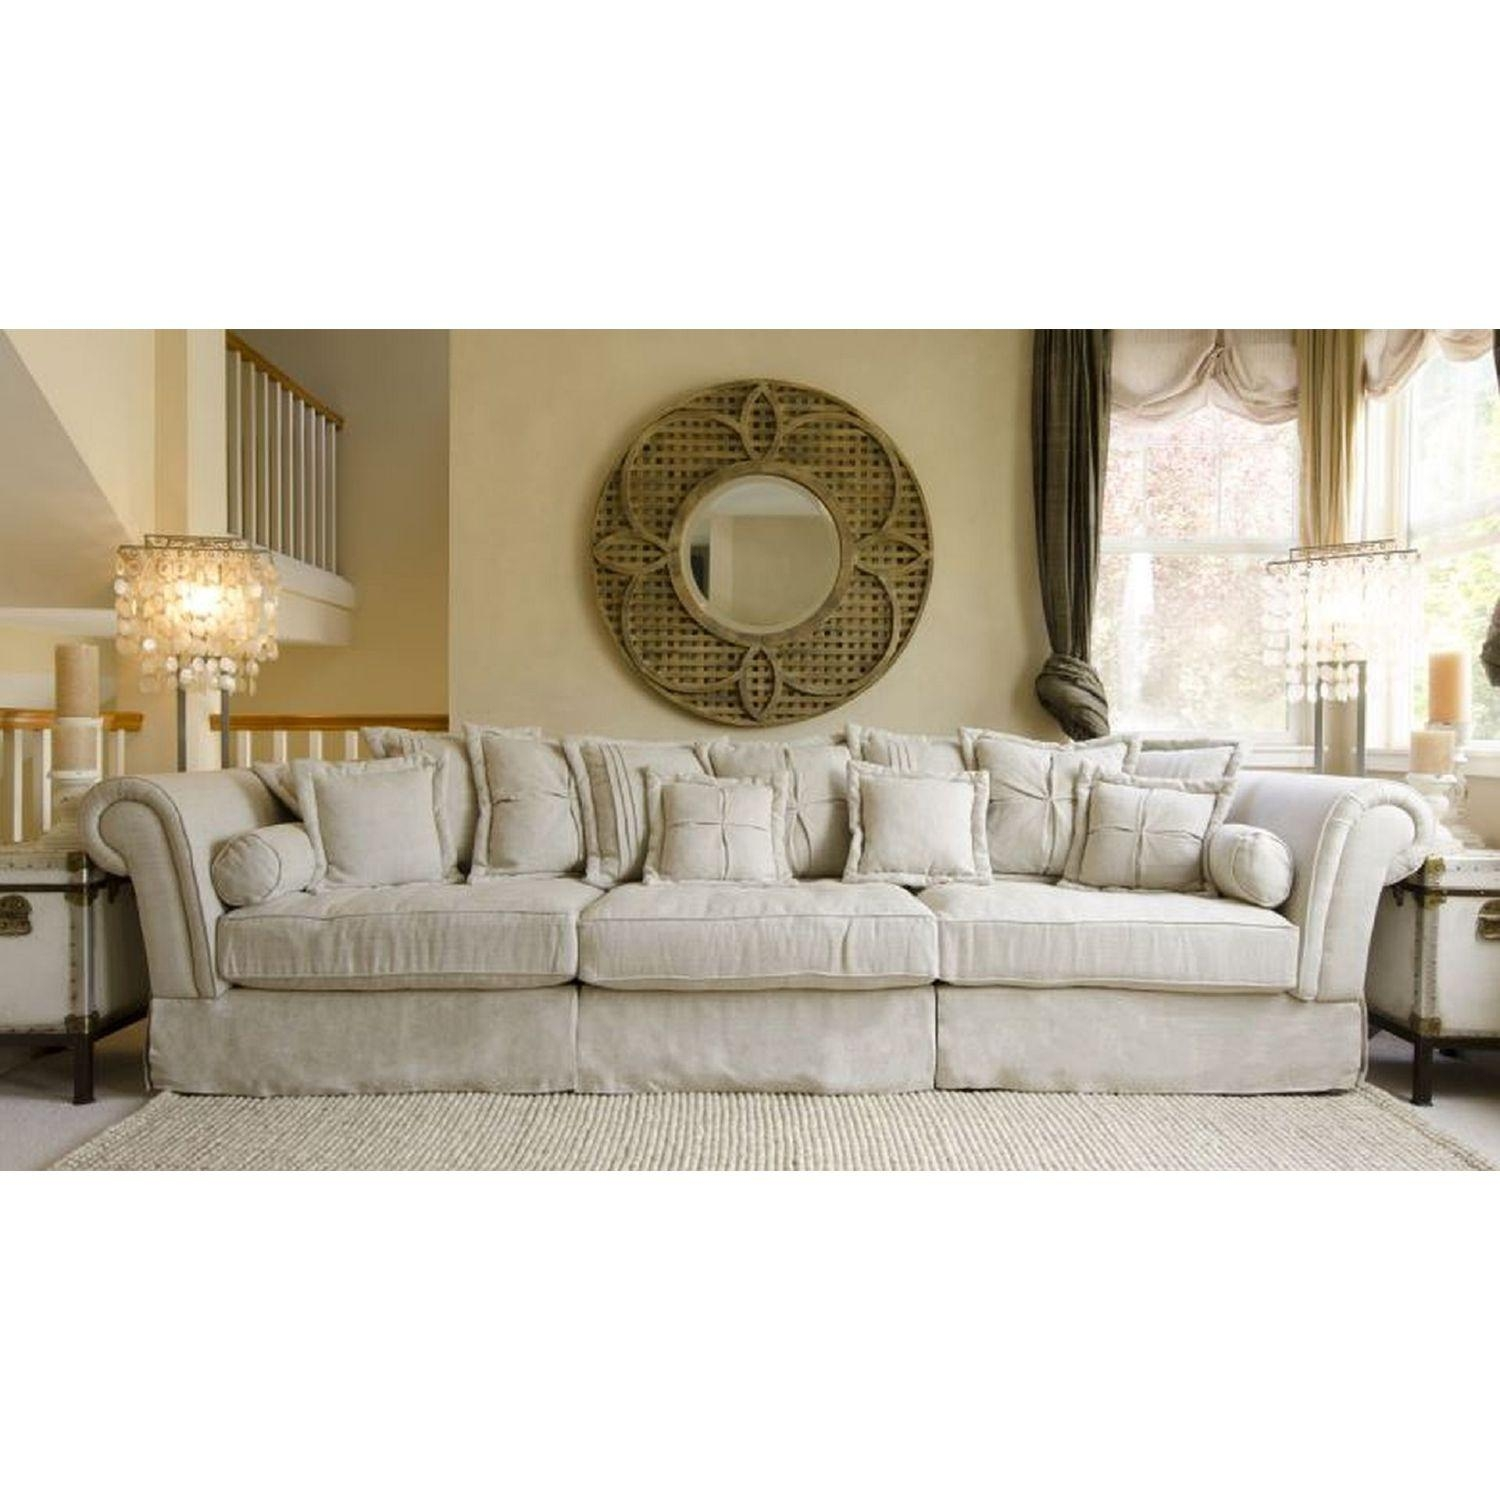 Furniture Home : Amusing Shabby Chic Sectional Sofa 16 For Your Within Shabby Chic Sectional Sofas Couches (Image 6 of 21)